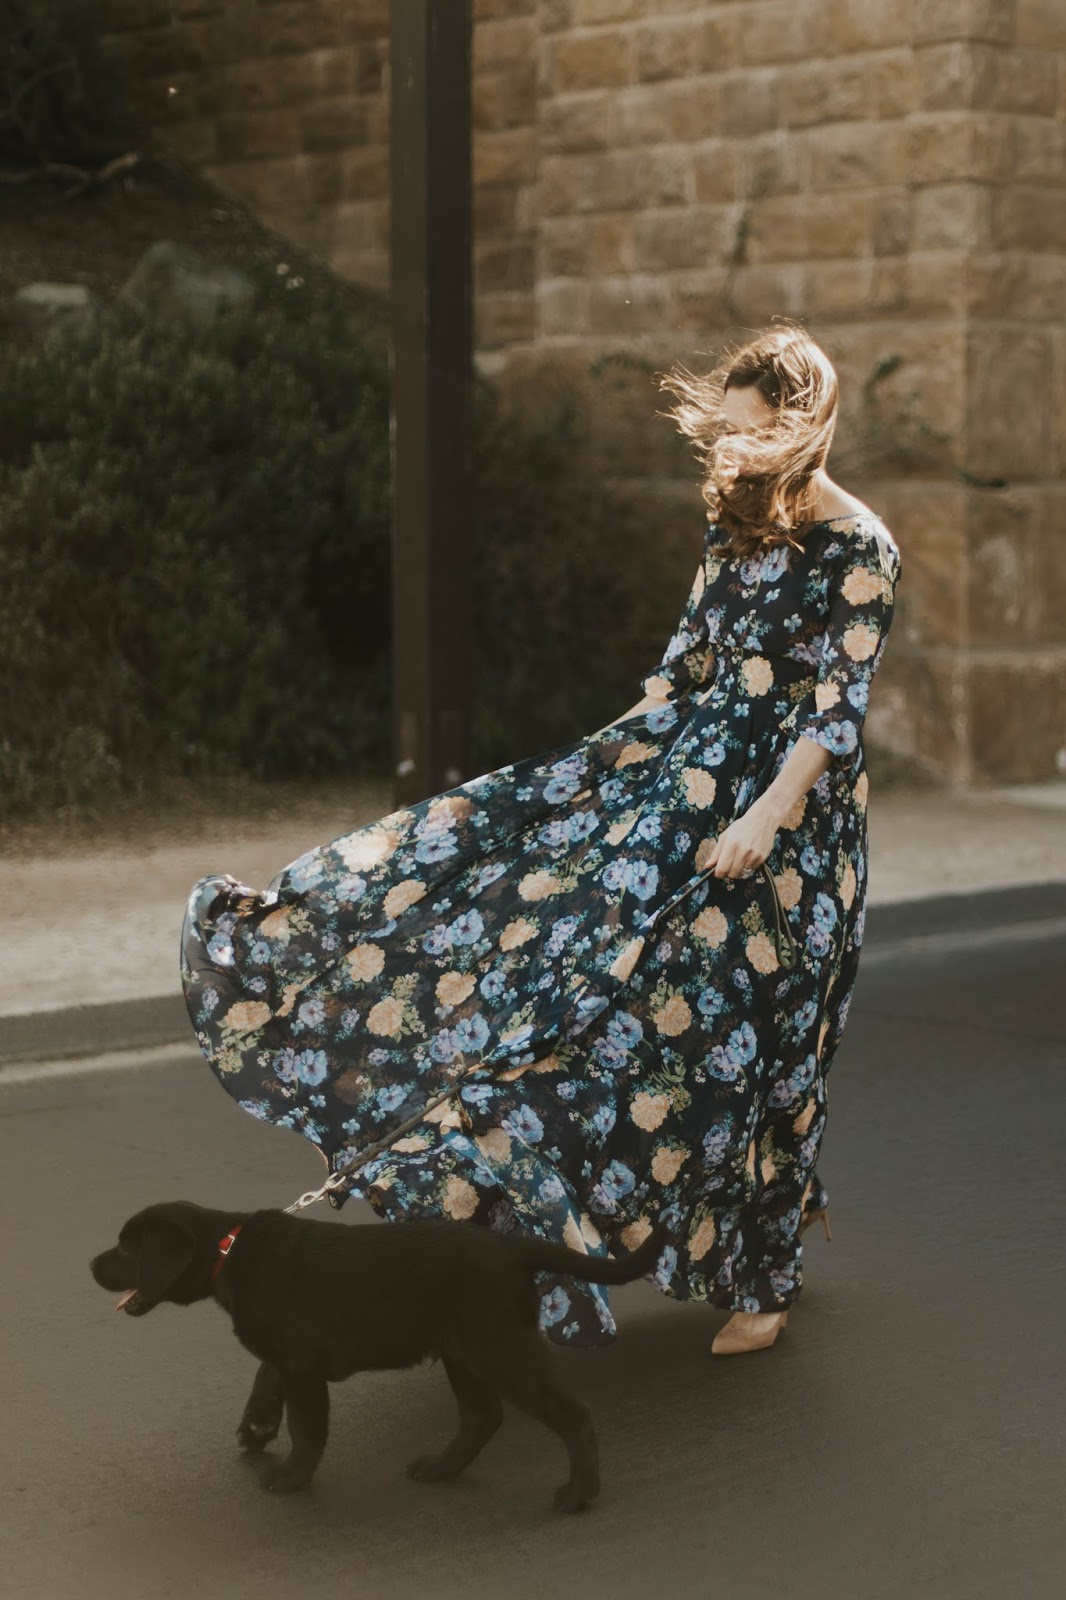 floral dress in the wind